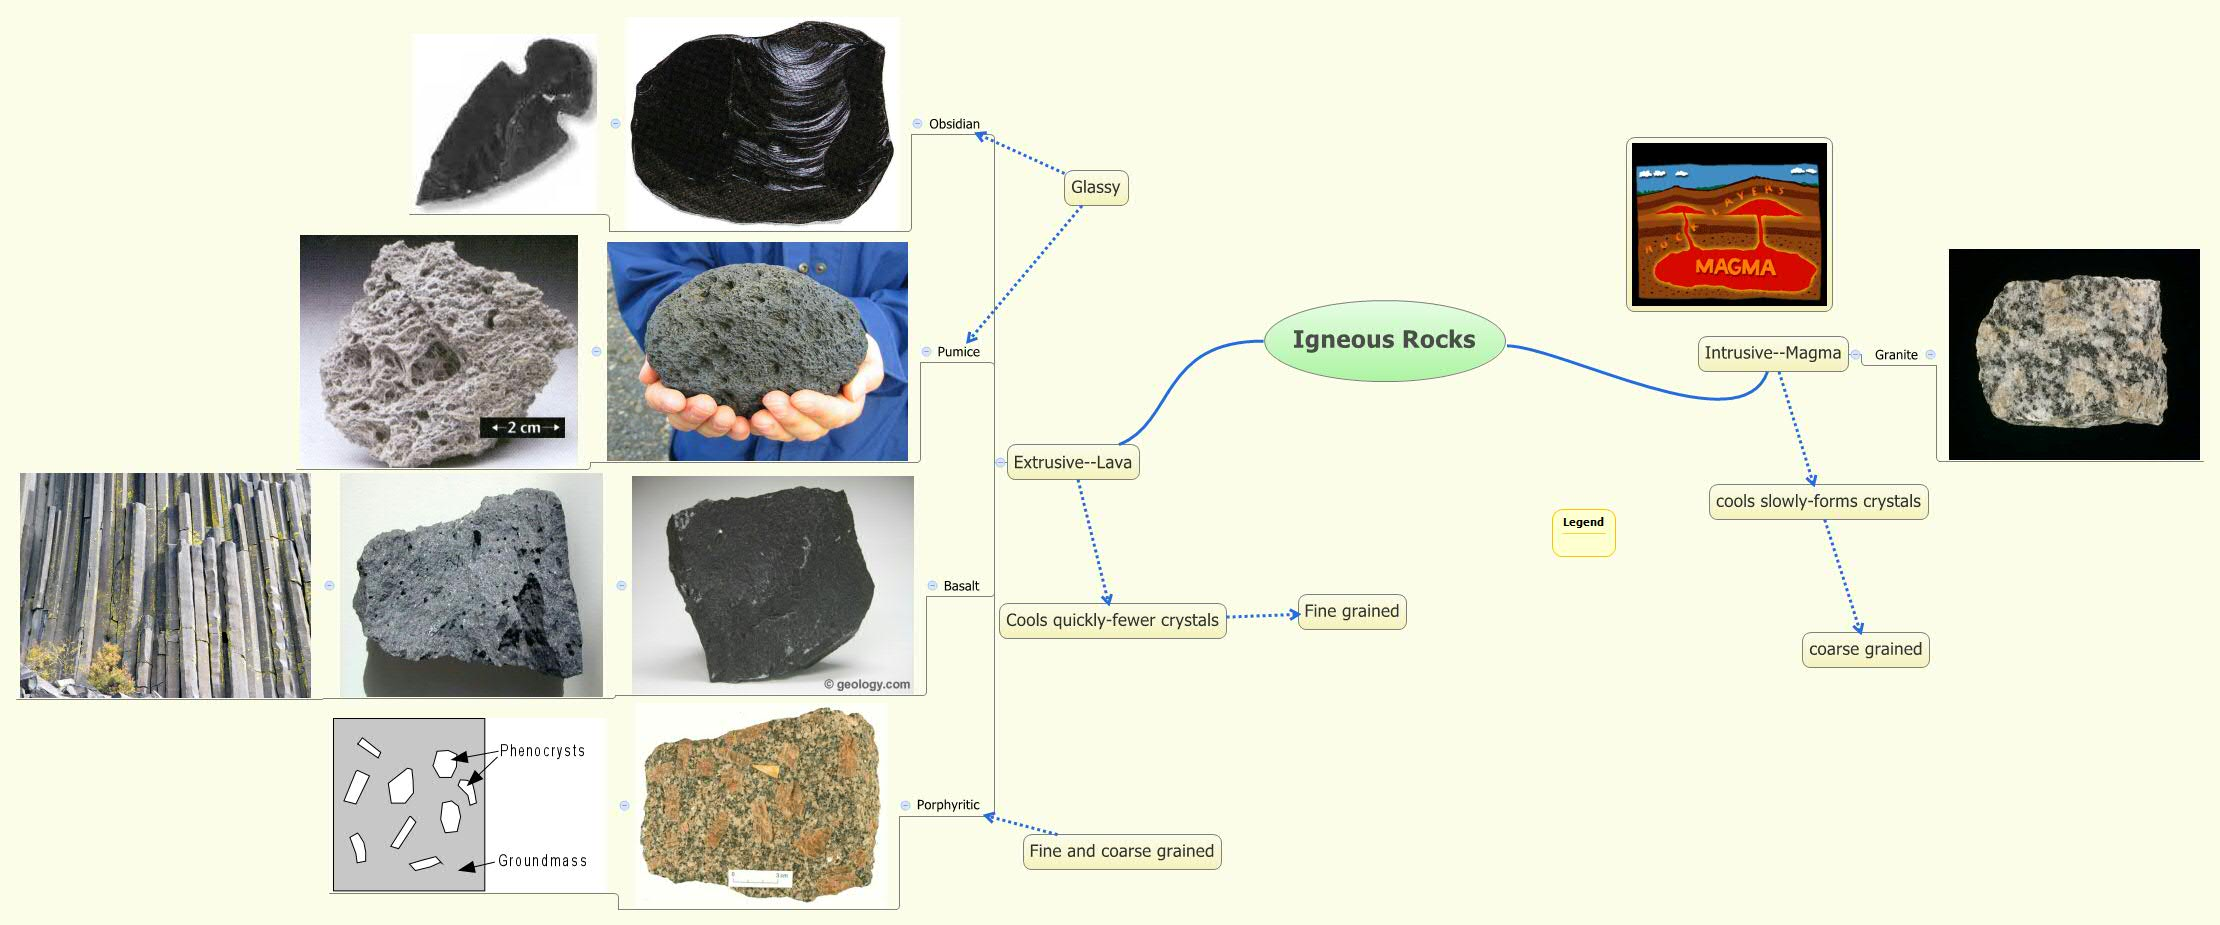 XMind Share - XMind - Mind Mapping on rock texture concept map, geologic time scale concept map, rock cycle concept map, groundwater concept map, sedimentary rock concept map, geology concept map, gas concept map, vein concept map, types of rocks concept map, quartz concept map, fracture concept map, ion concept map, landform concept map, ionic compound concept map, composition concept map, pangaea concept map, crystal system concept map, magma concept map, pressure concept map, lava concept map,